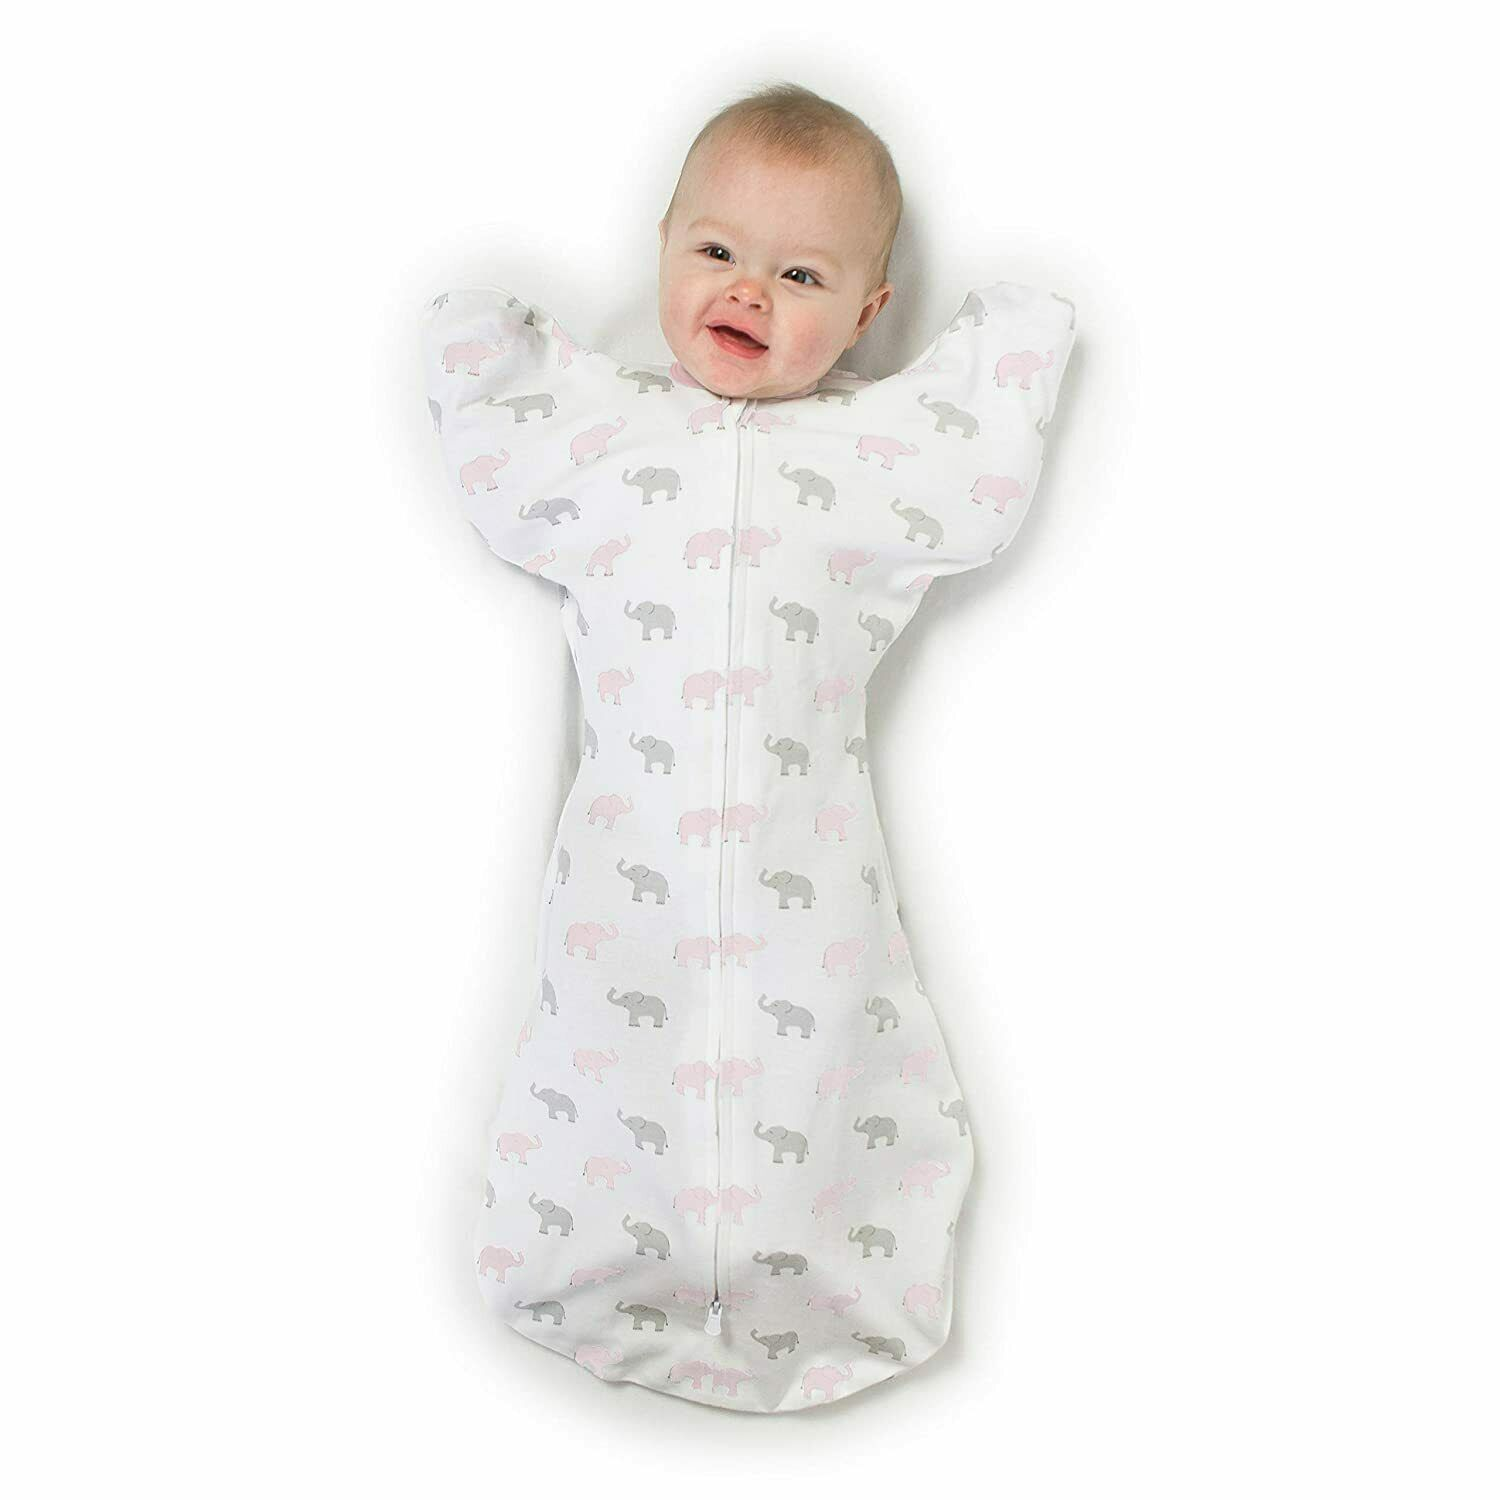 swaddle sack arms up sleeves with foldover